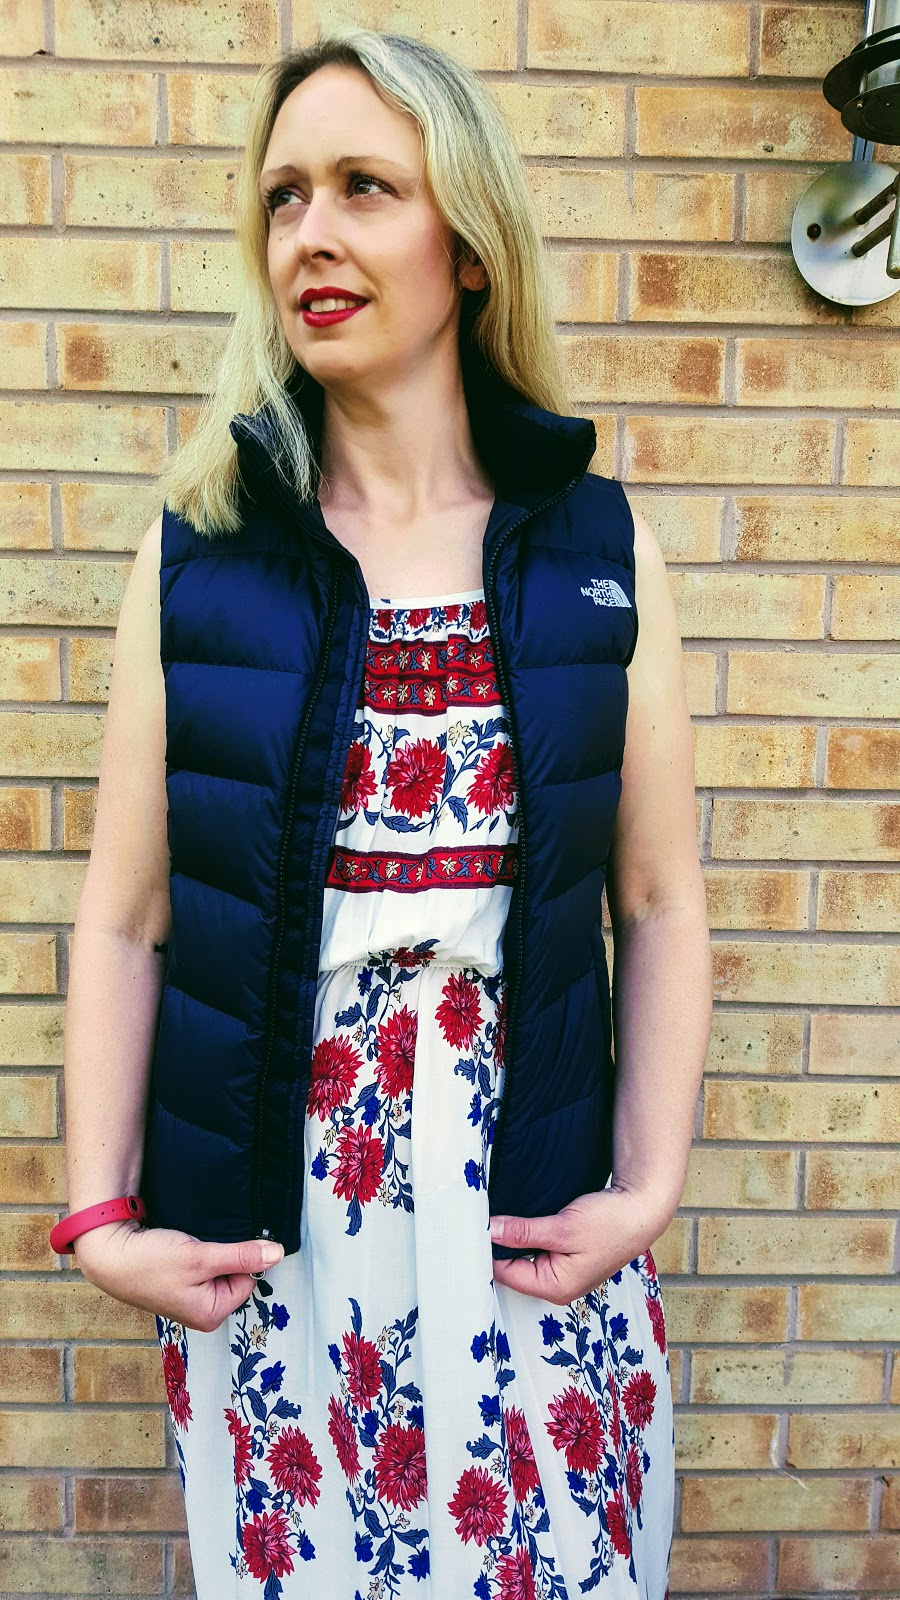 A Gilet for the Great British Summertime Weather